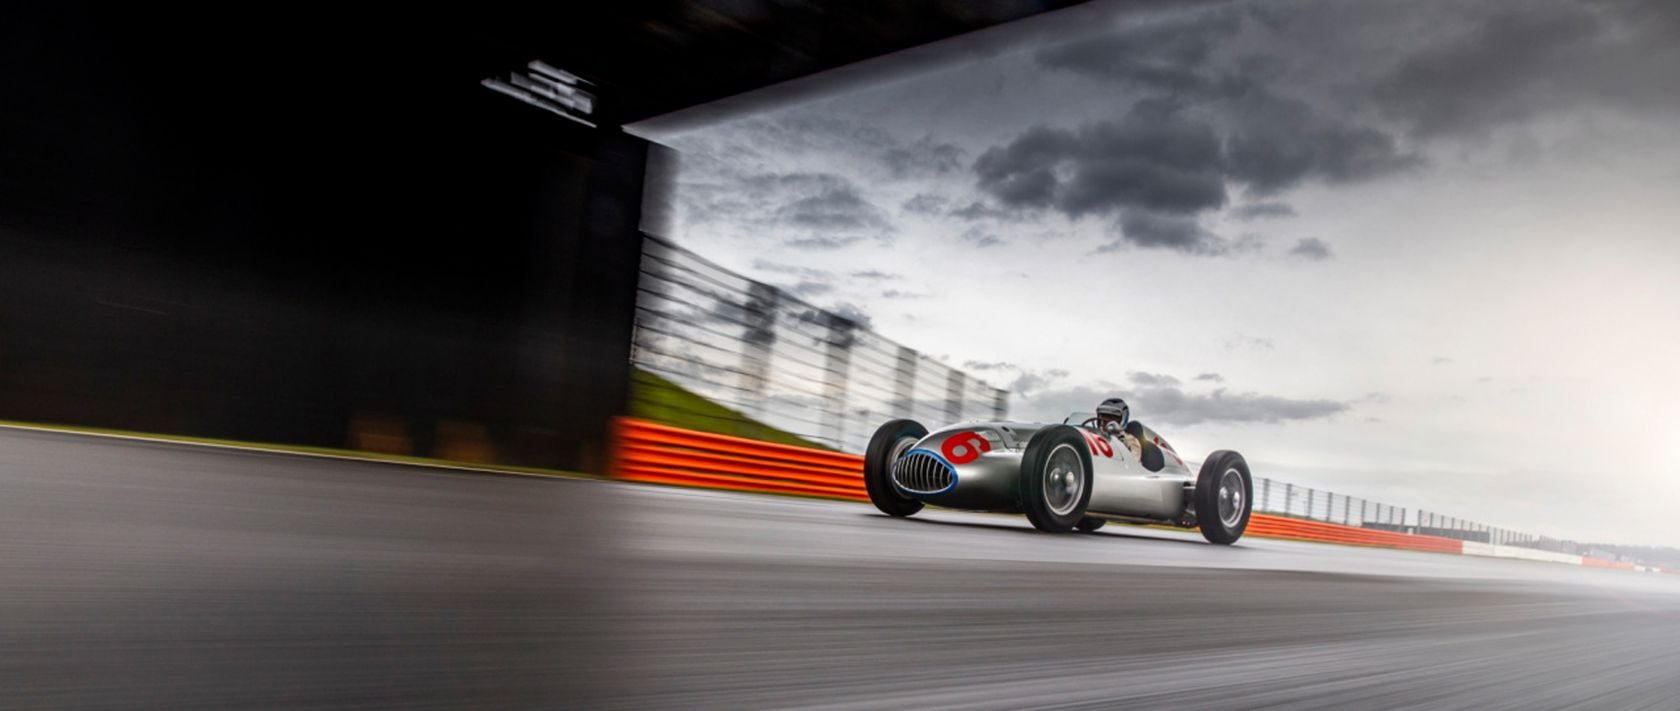 The Mercedes-Benz W 165 from 1939 was explicitly developed and built for the Tripoli Grand Prix.